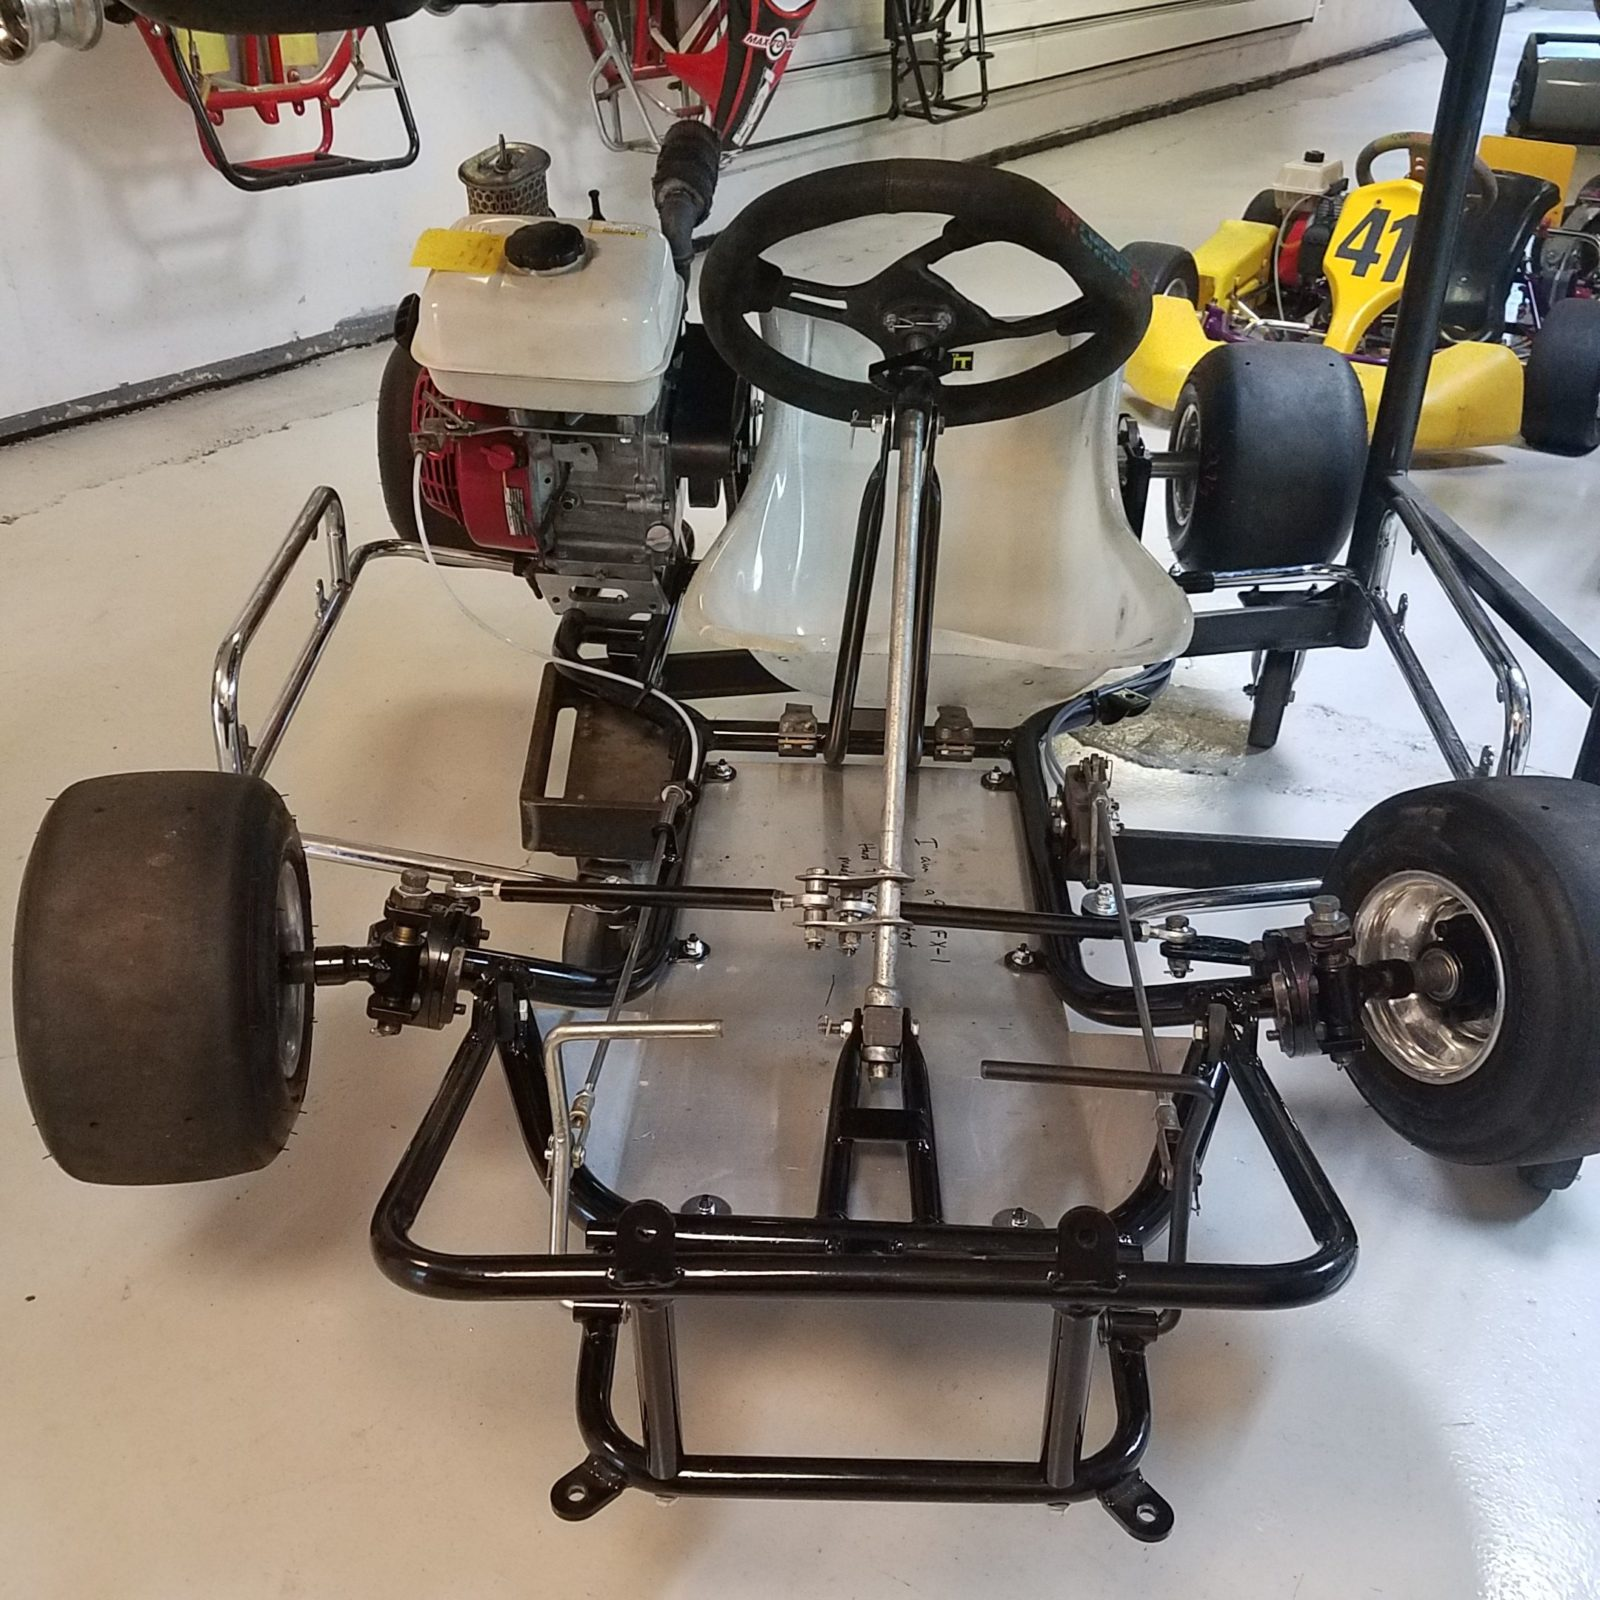 Used Go Karts for Sale - Sugar River Raceway | Go Kart Race